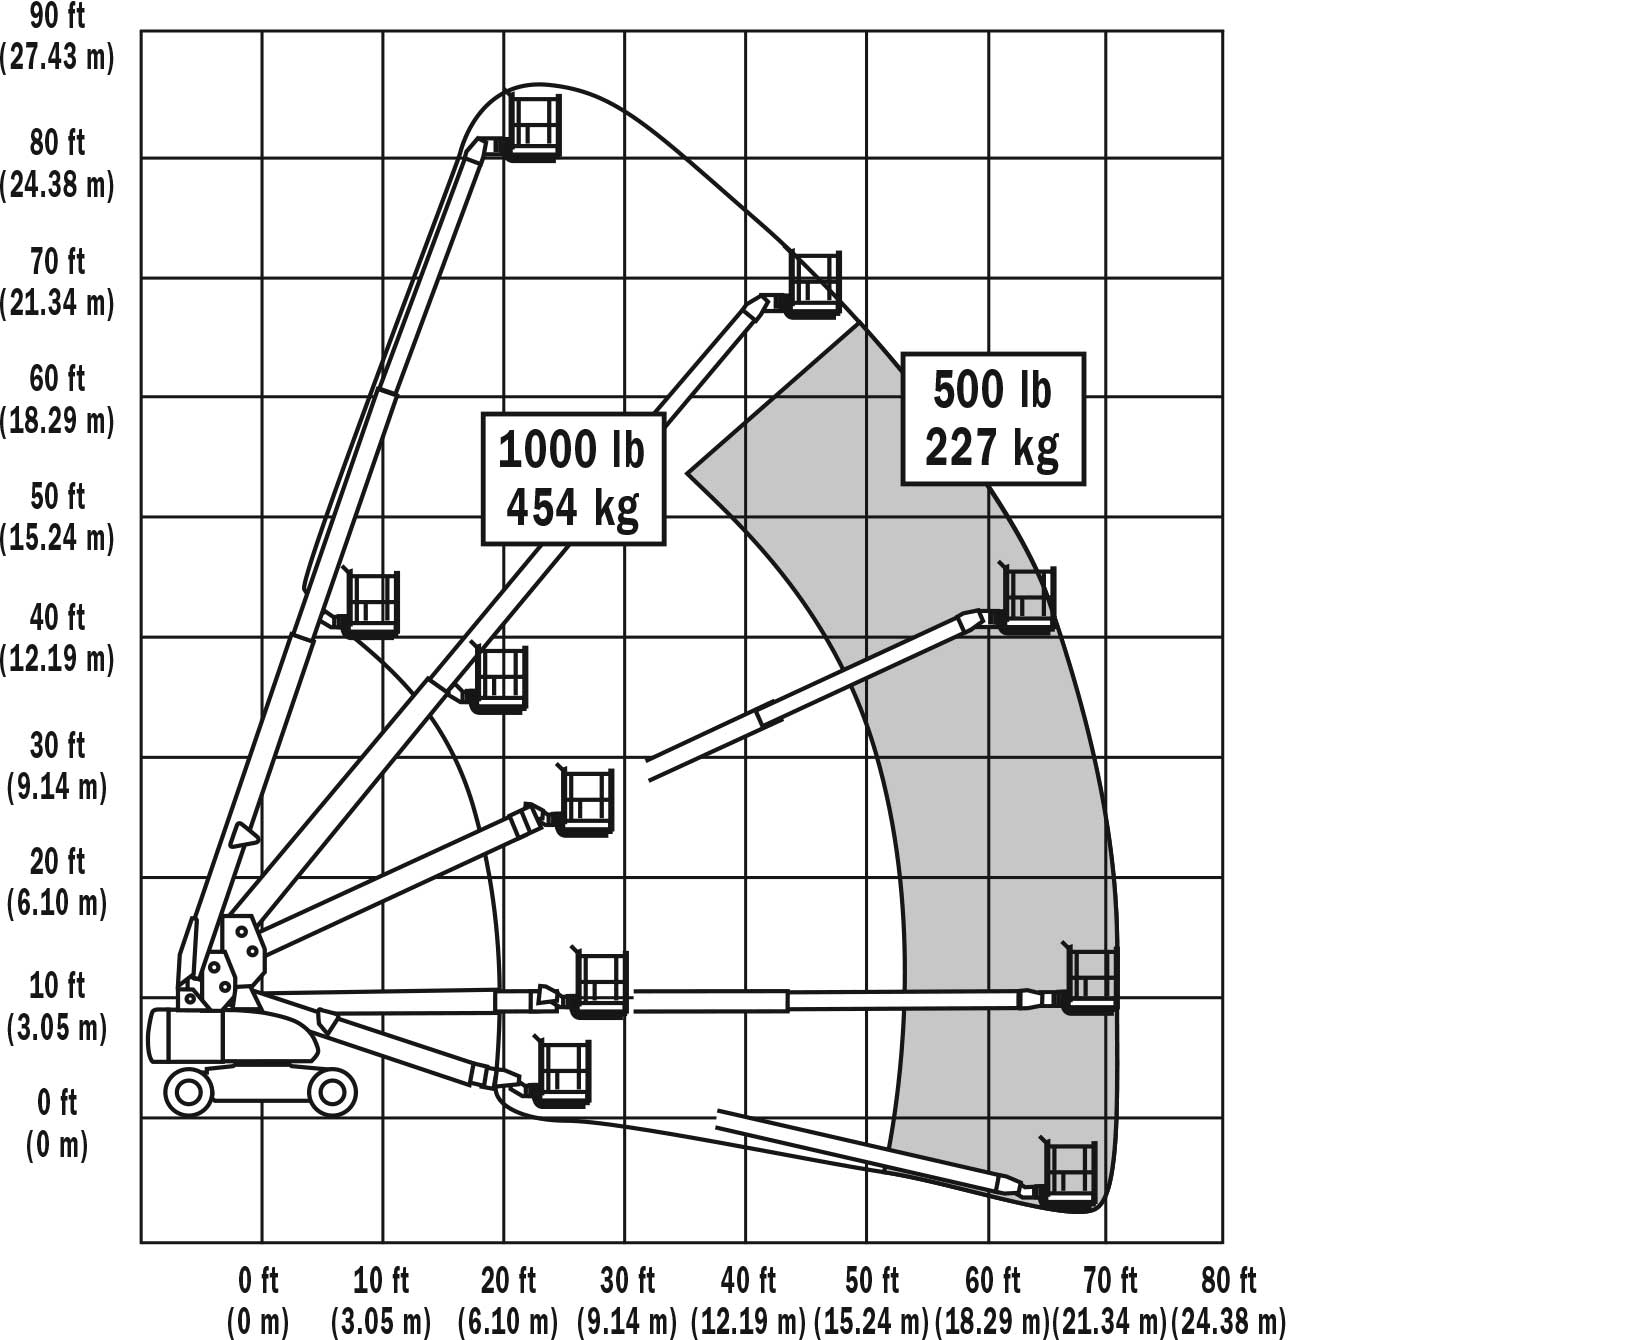 extension ladder parts diagram twin leisure battery wiring 800s west coast equipmentwest equipment